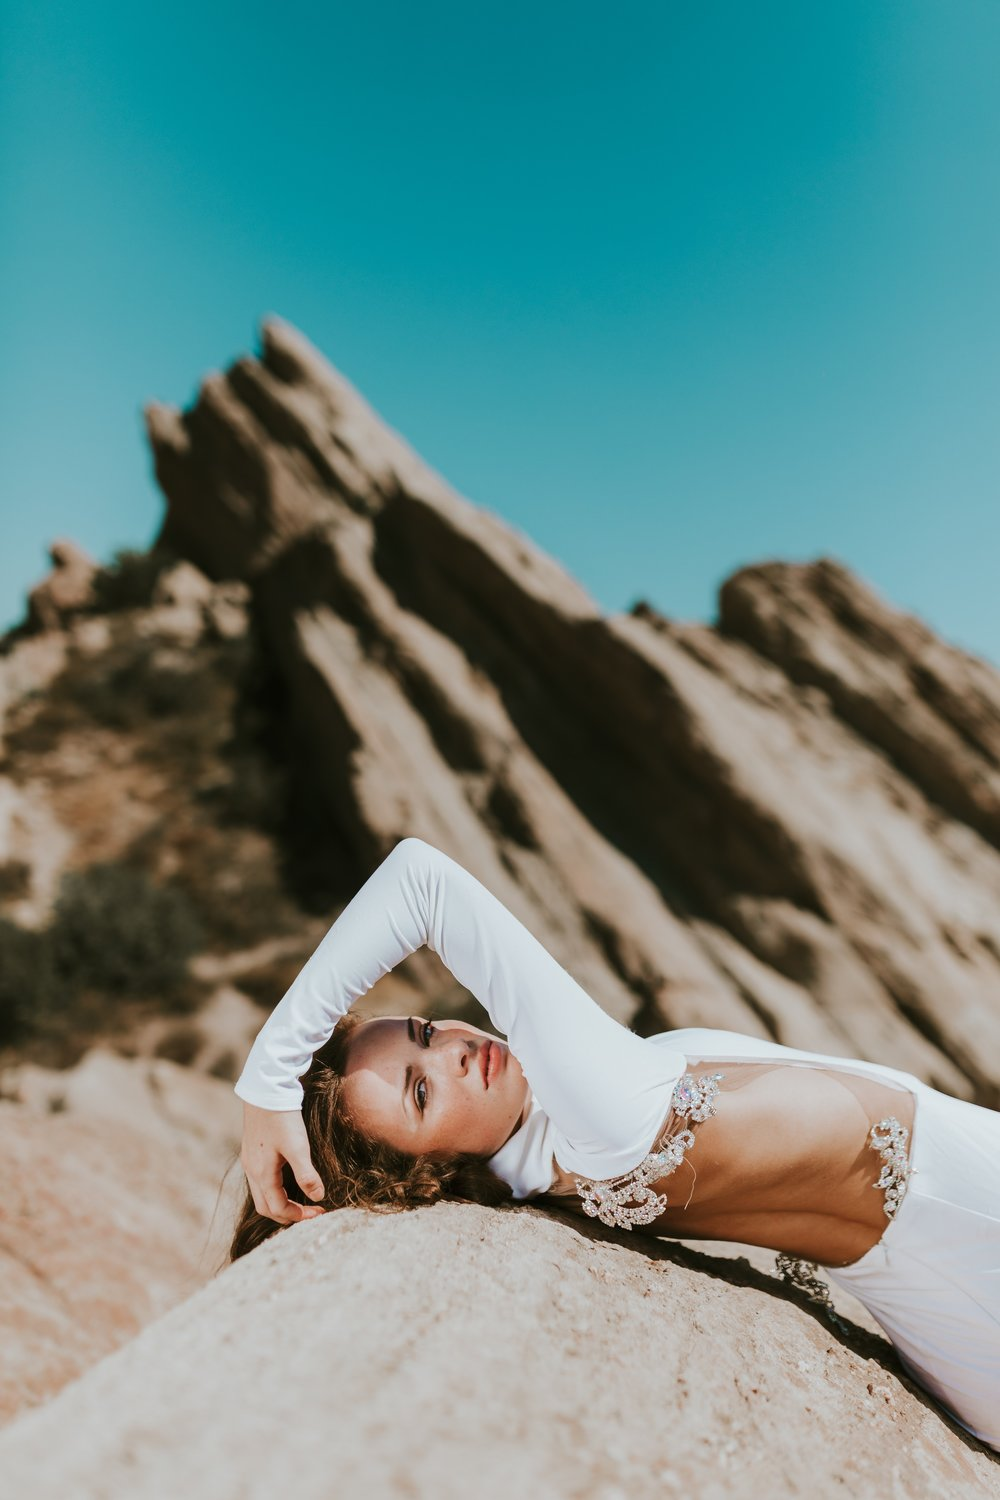 Jazlyn Editorial Shoot Vasquez Rocks (12 of 104).jpg